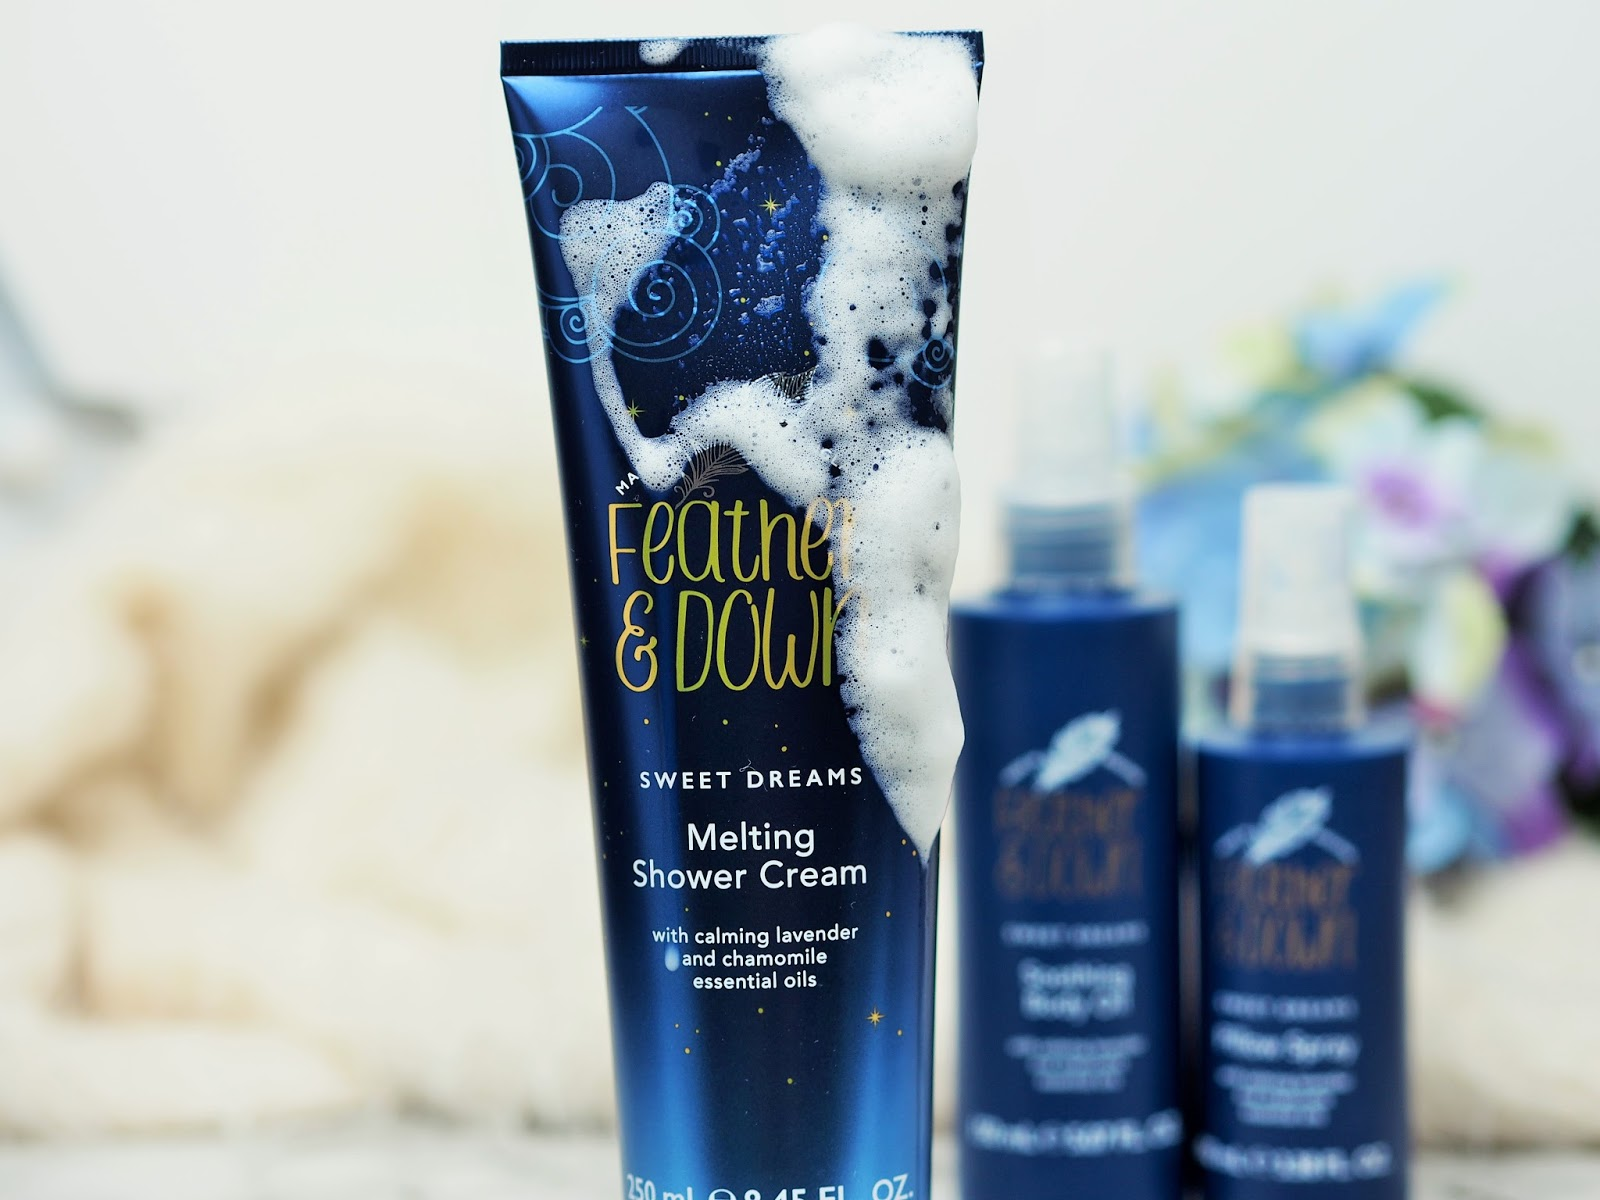 Sweet Dreams Melting Shower Cream Feather & Down